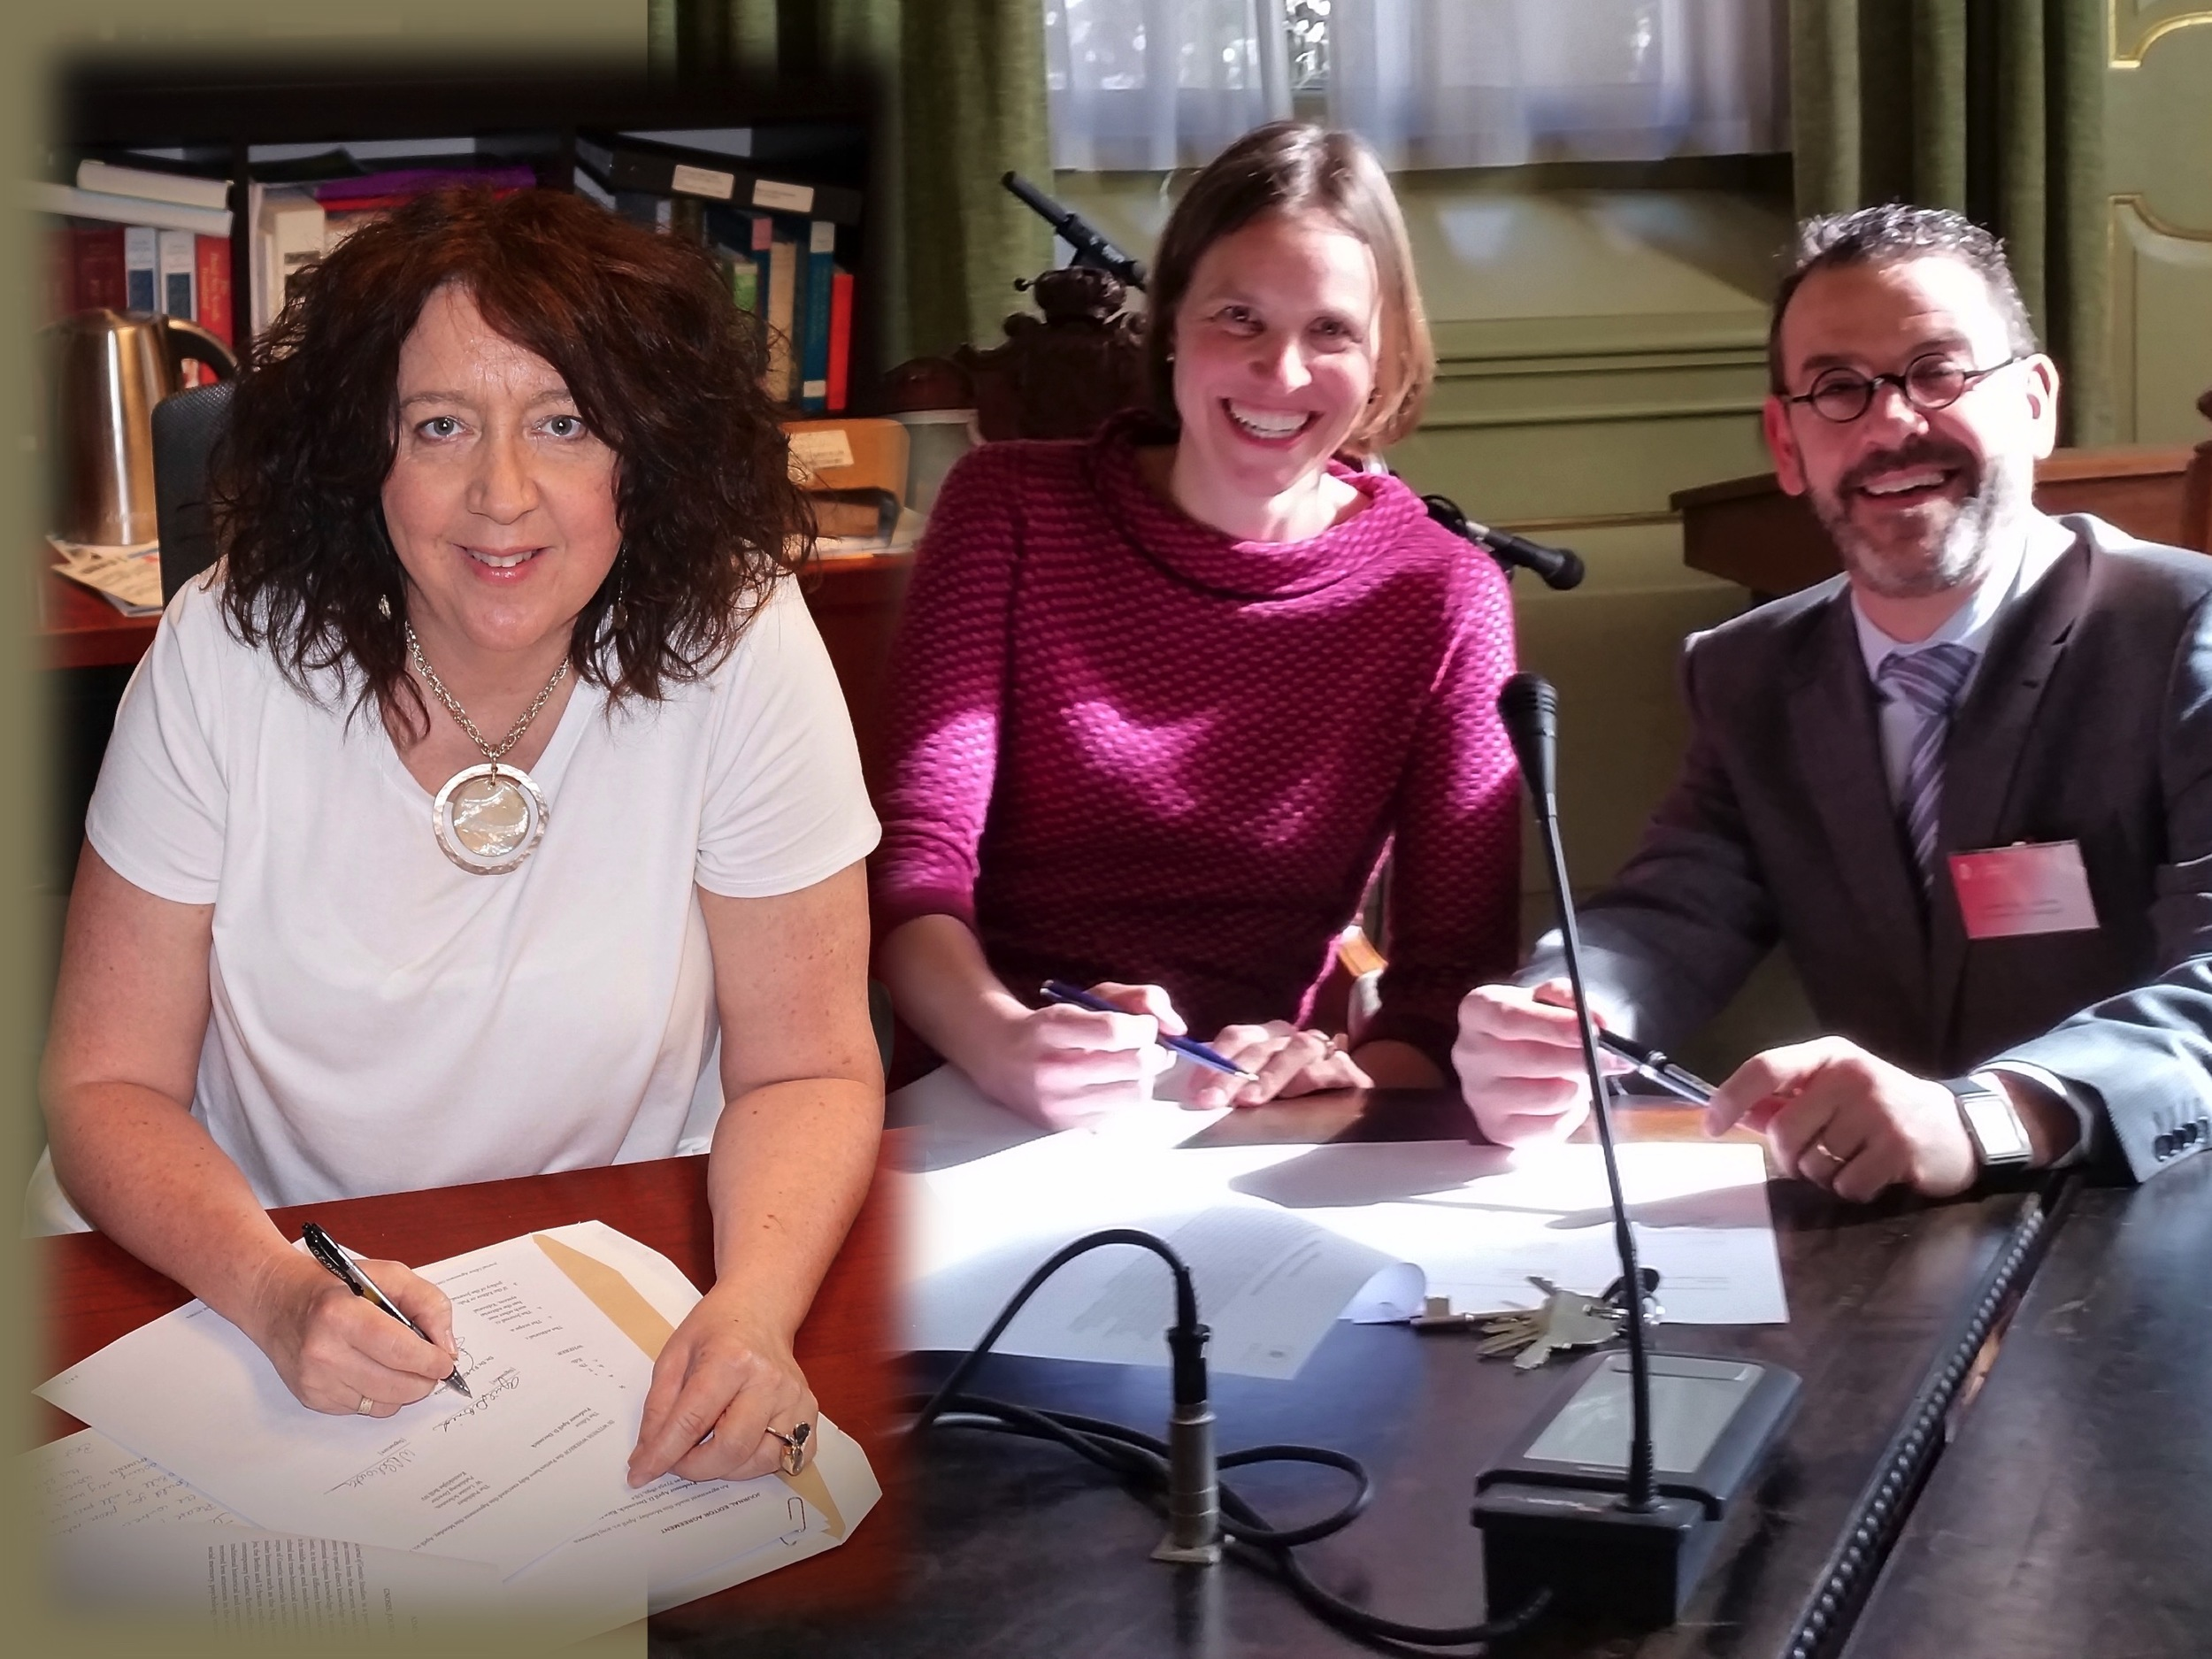 Signing contract for GNOSIS: Journal of Gnostic Studies, with Loes Schouten and Lautaro Lanzillotta, June 2015